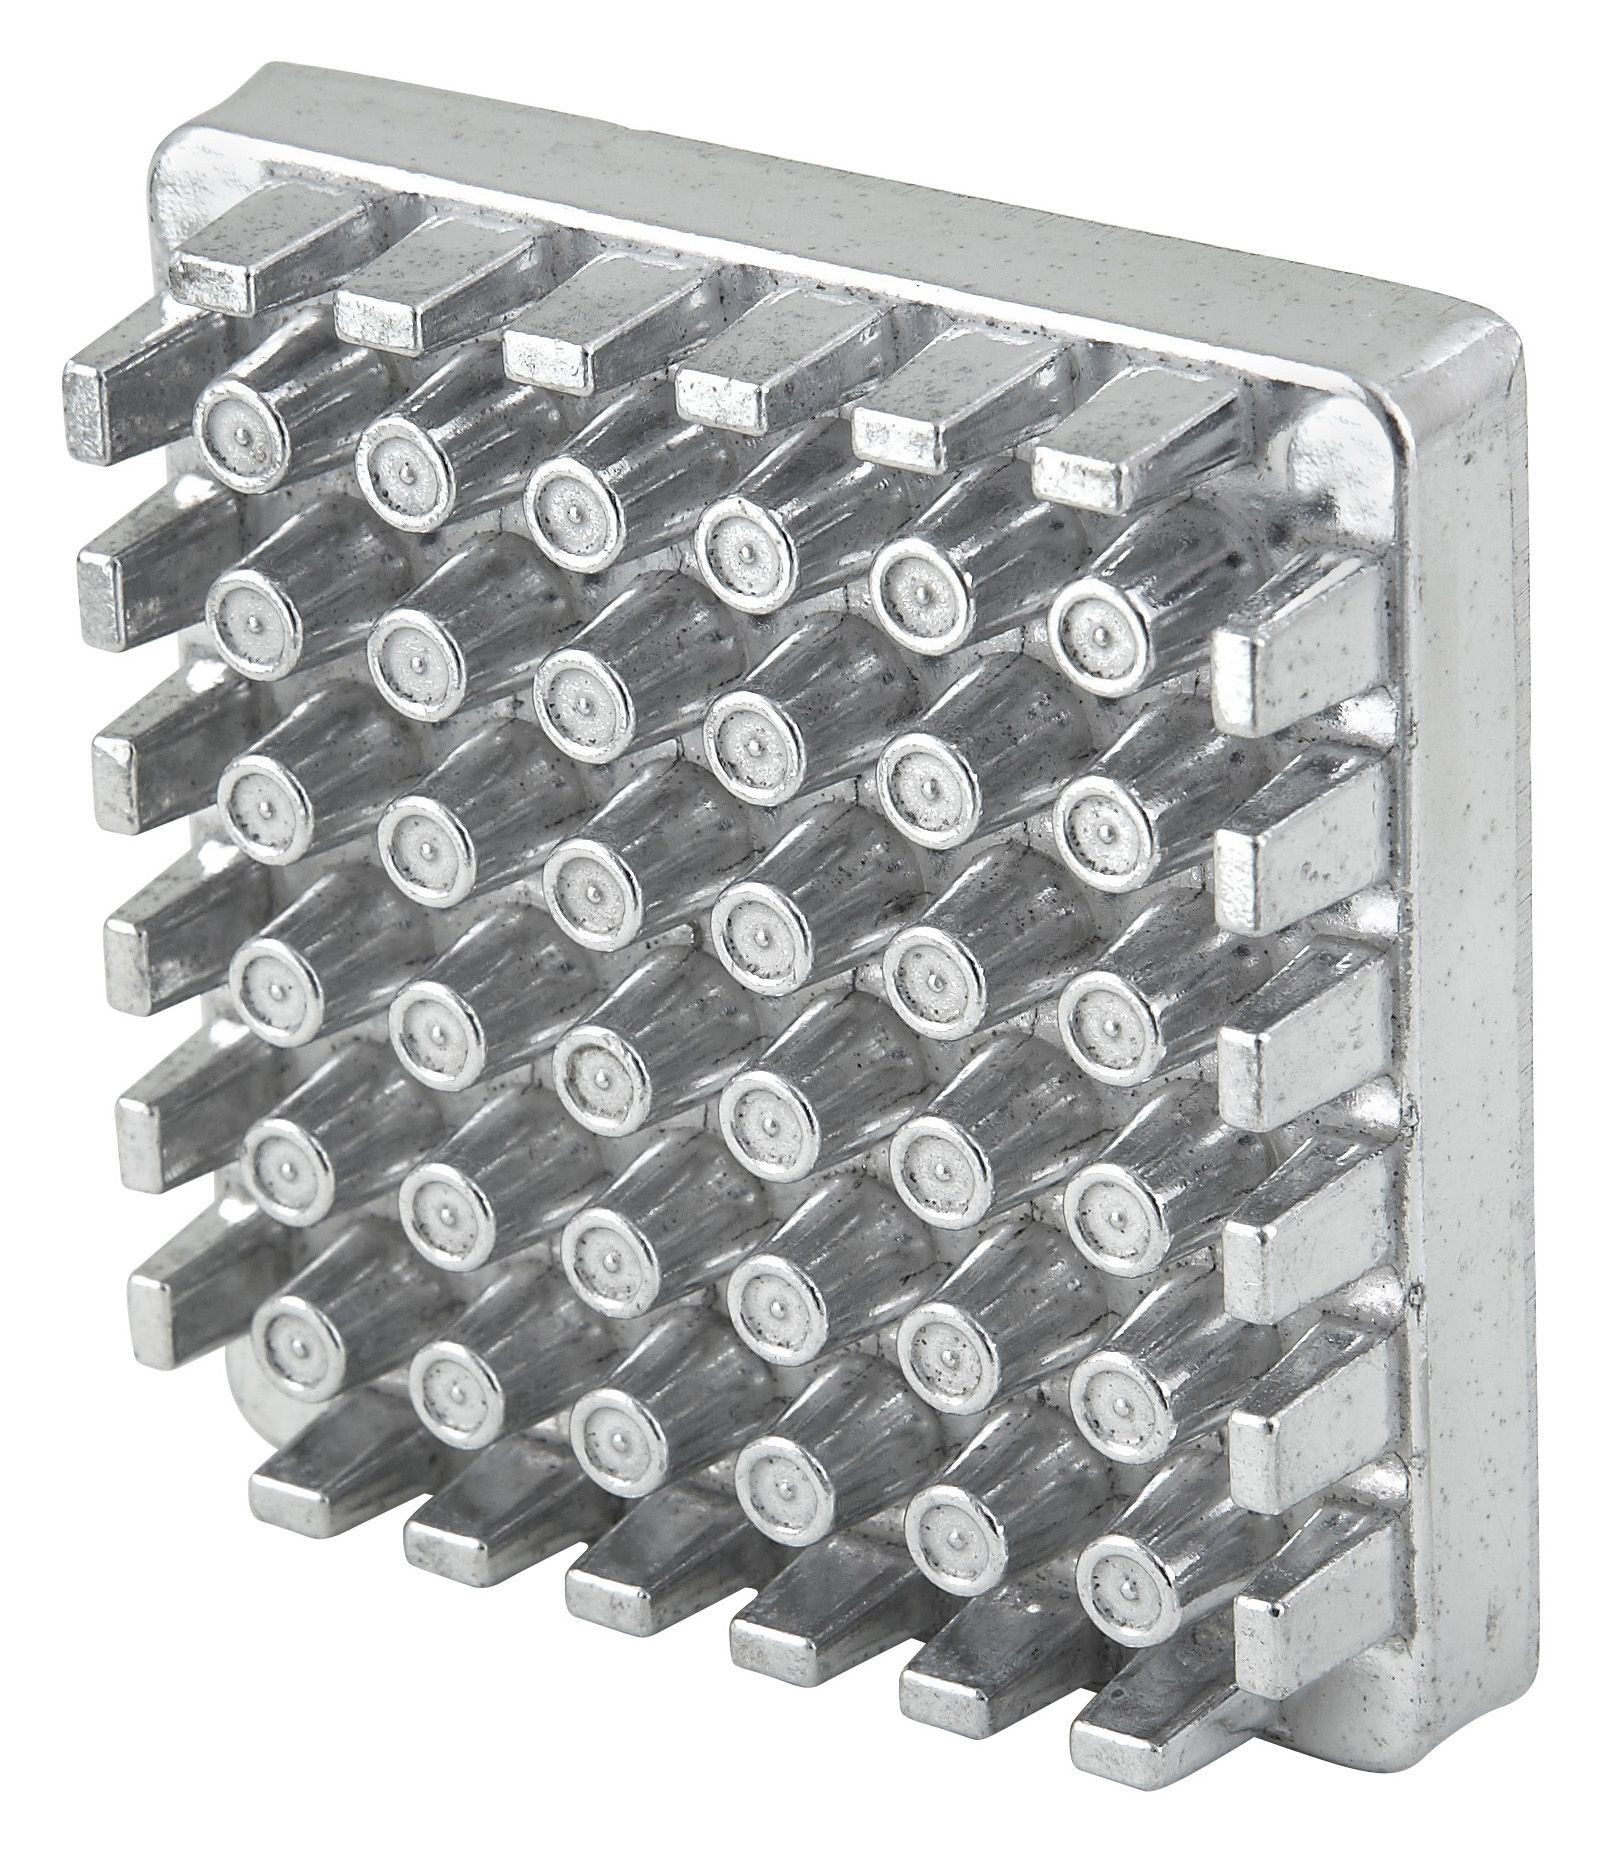 Pusher Block For French Fry Cutter (FFC-375)